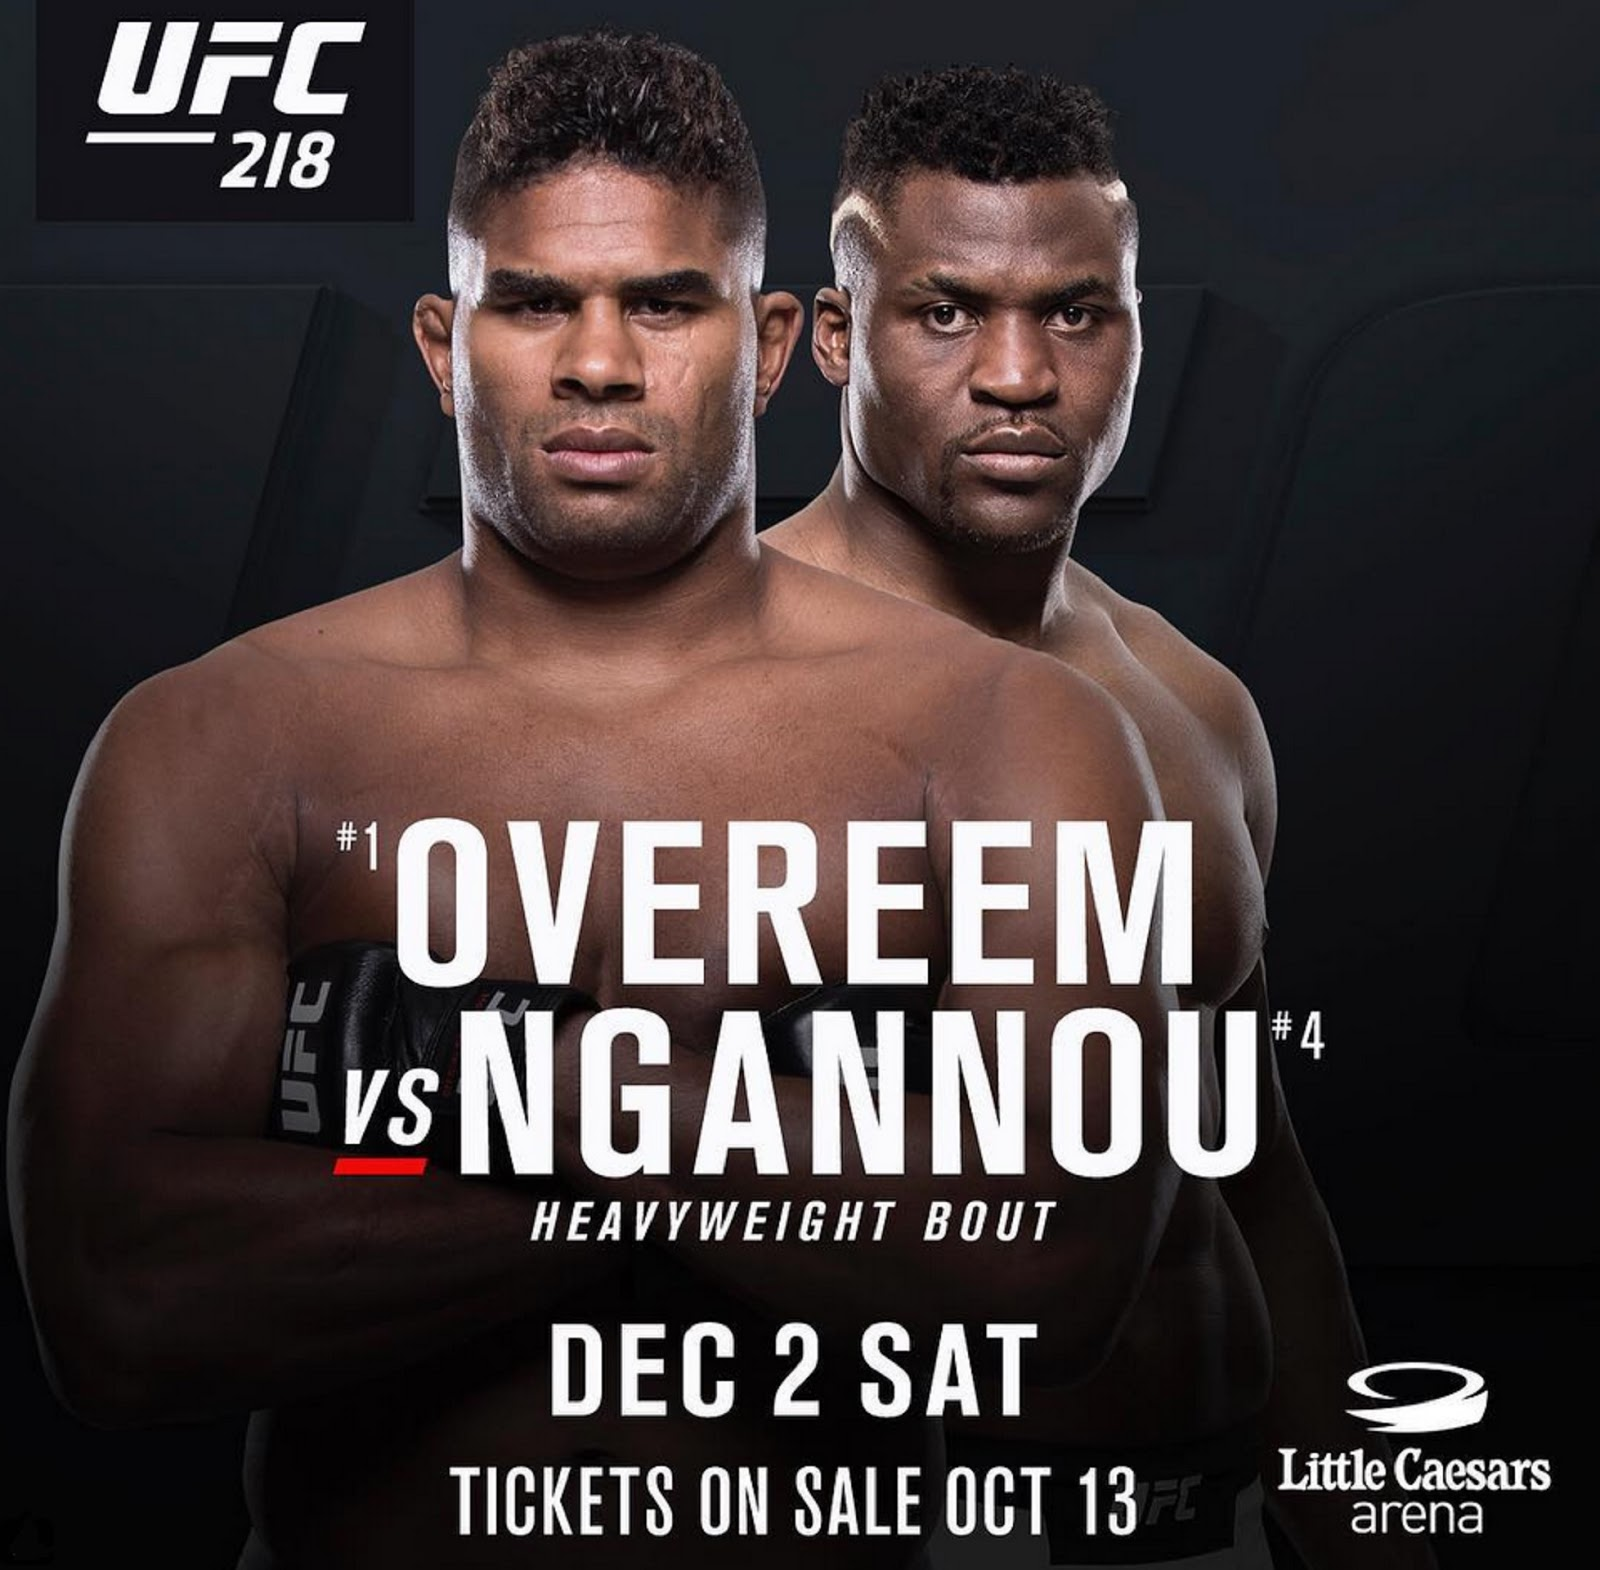 ALISTAIR OVEREEM VS FRANCIS NGANNOU 3